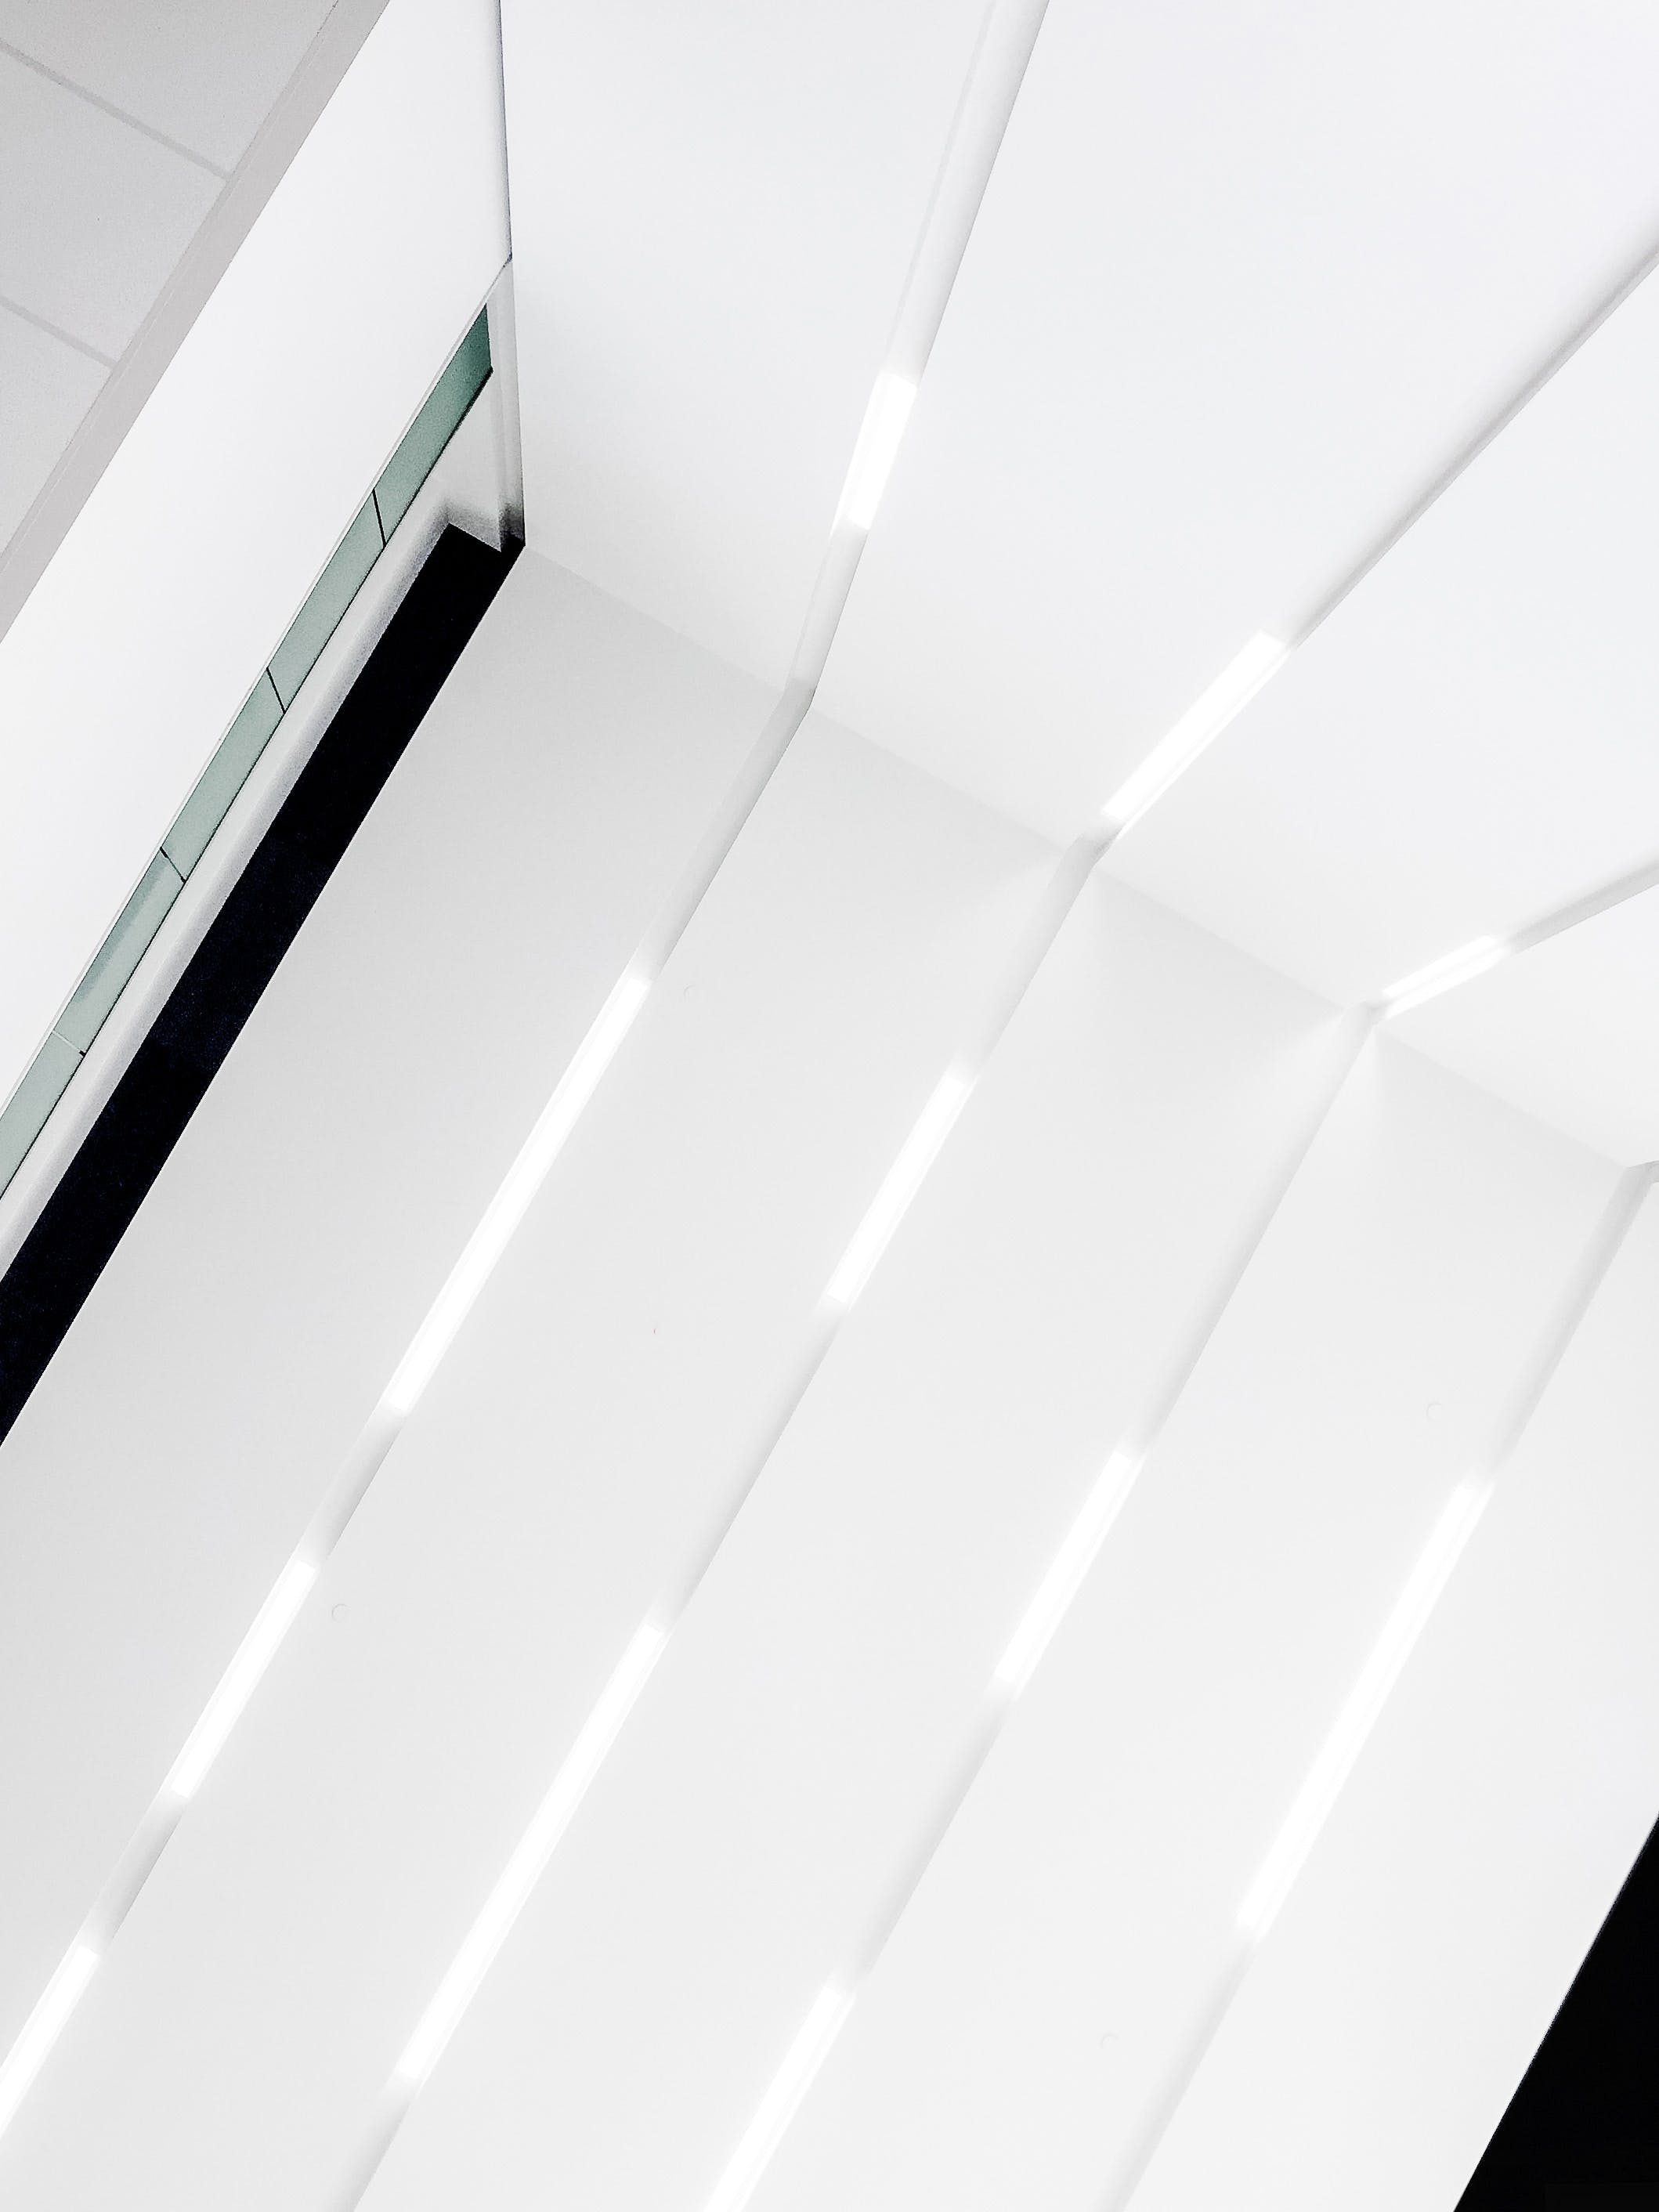 of abstract, architectural, atrium, building